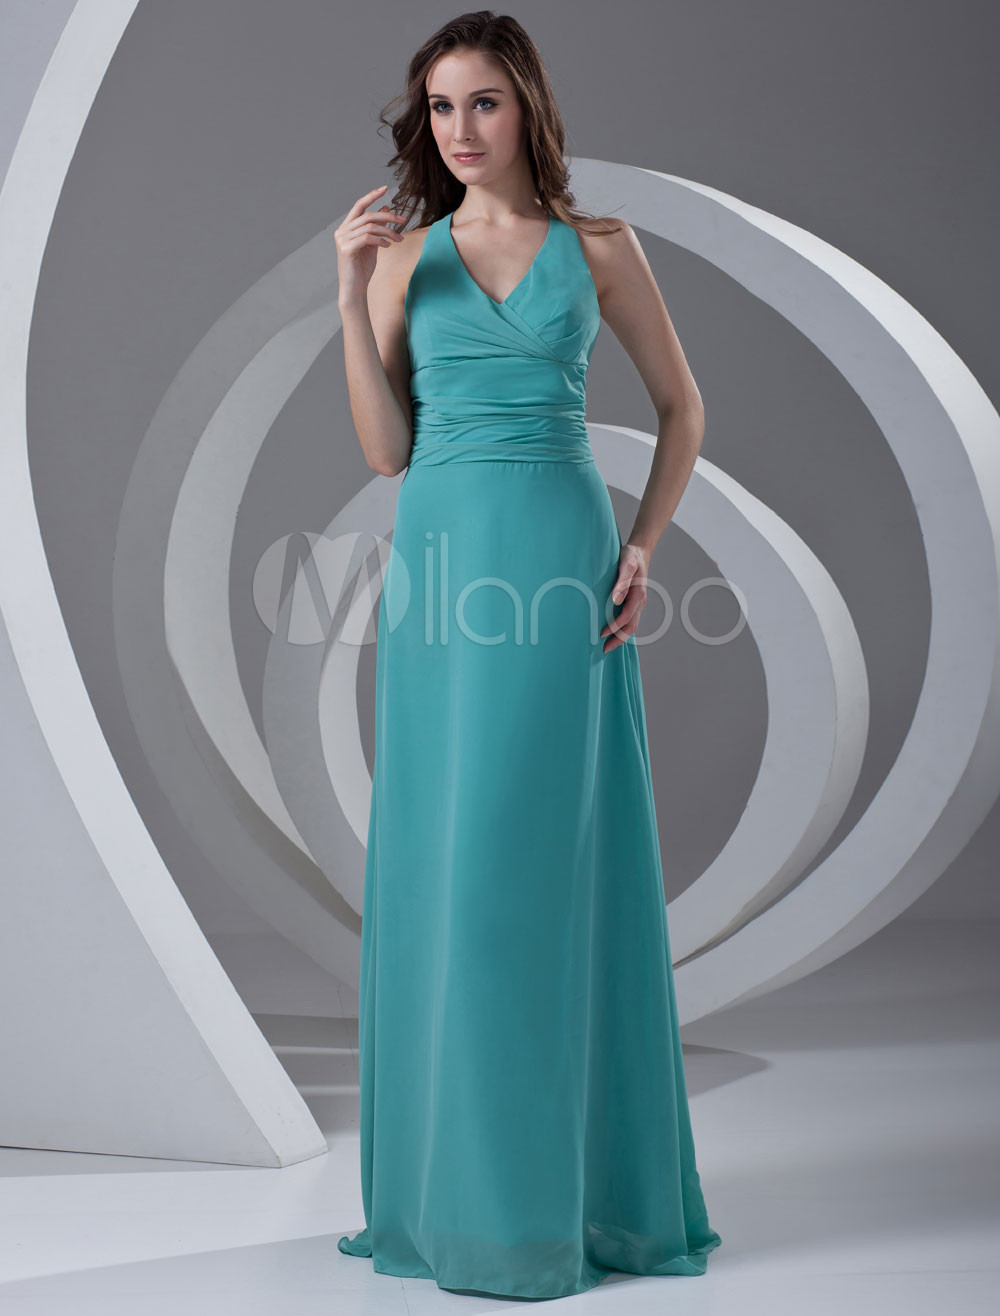 Buy Chiffon Bridesmaid Dress Halter Turquoise V Neck Long Prom Dress Backless Ribbon Bow Floor Length Wedding Party Dress for $112.49 in Milanoo store